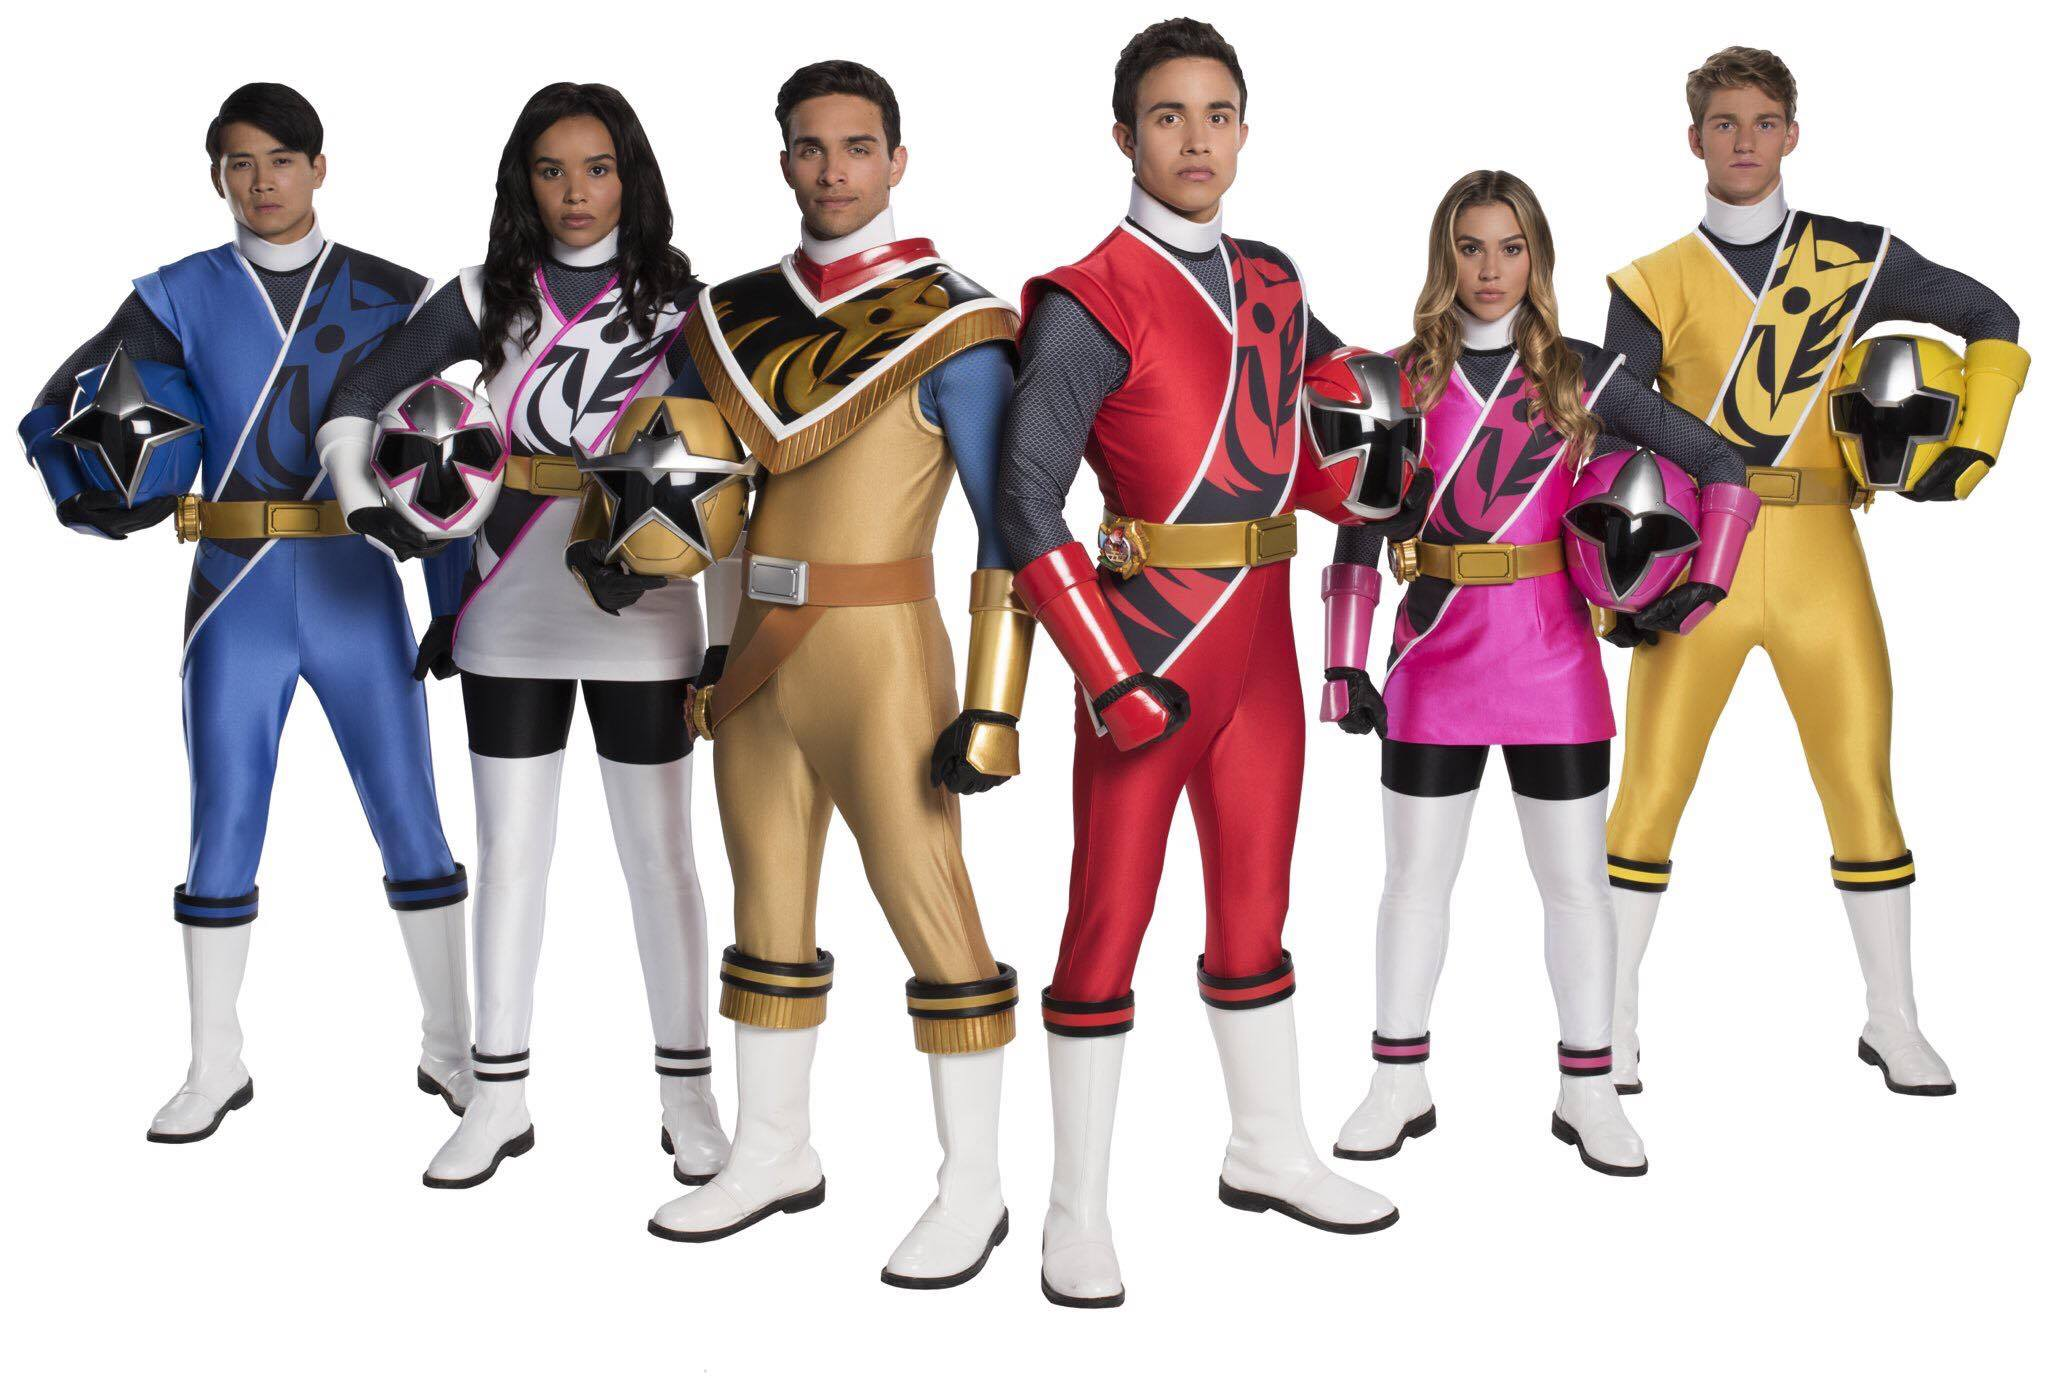 Power Rangers Ninja Steel Cast Announced As Guests For PMC 6